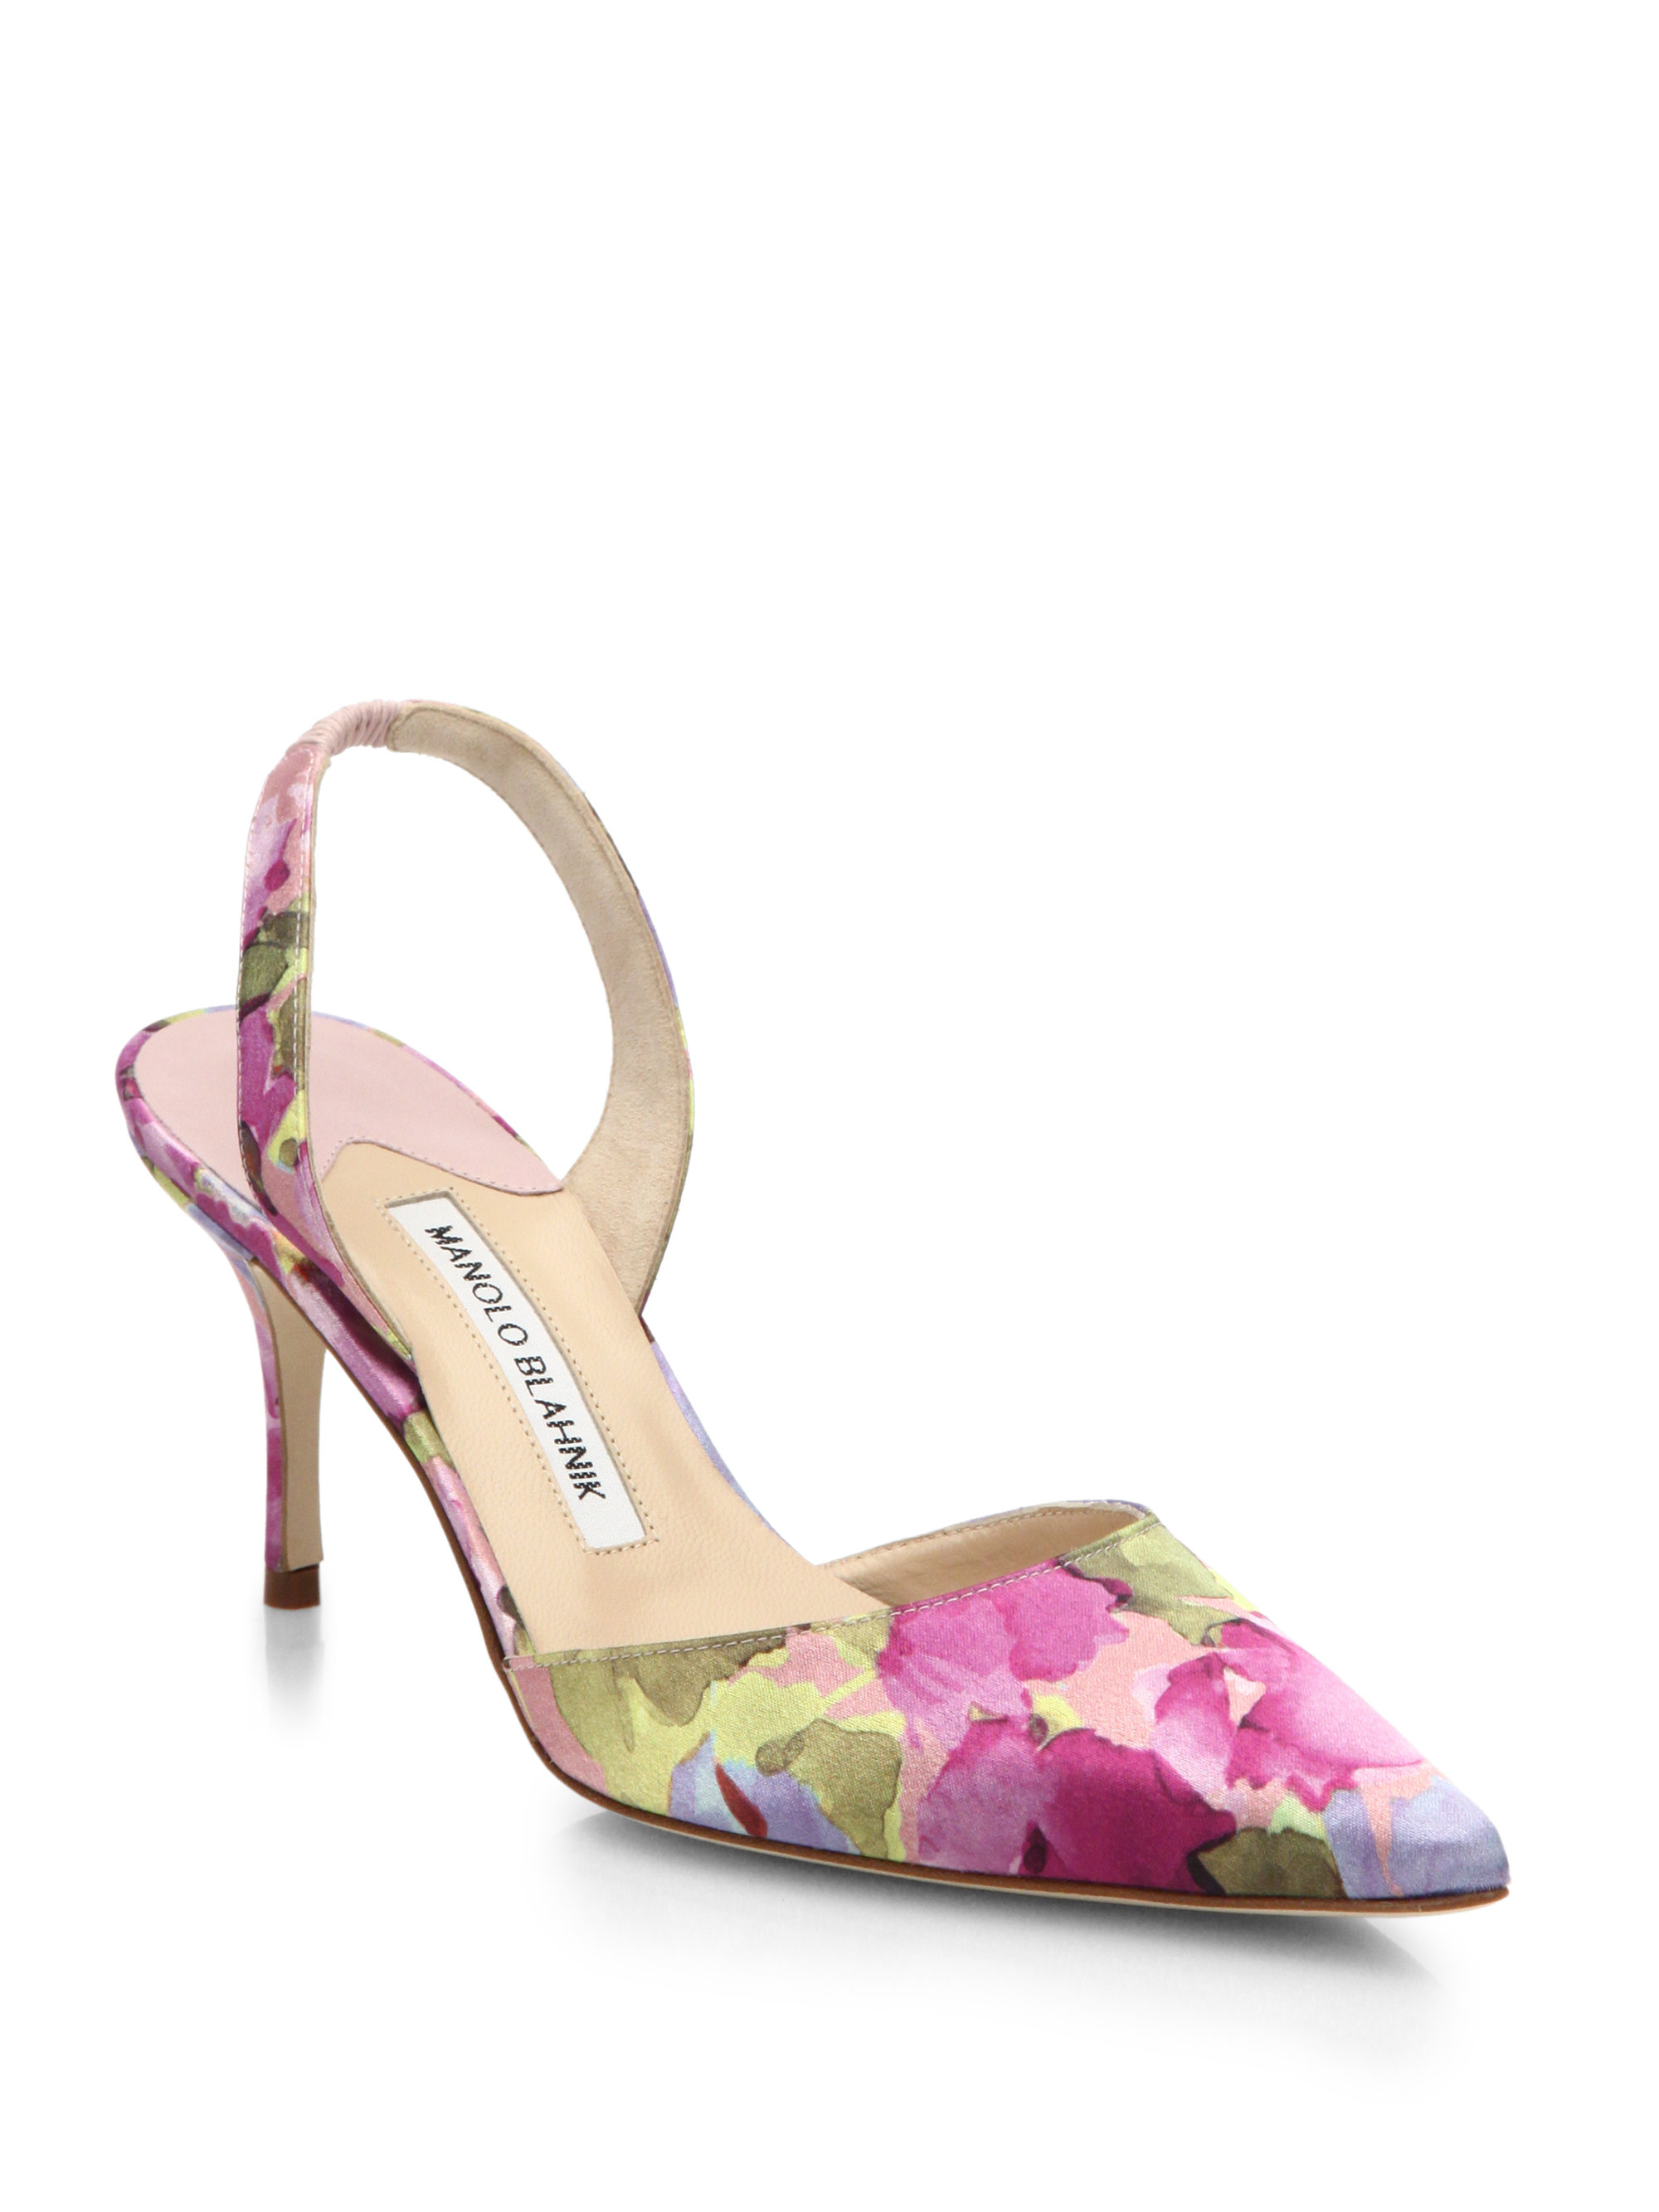 Lyst - Manolo blahnik Floral-Print Satin Slingback Pumps in Purple